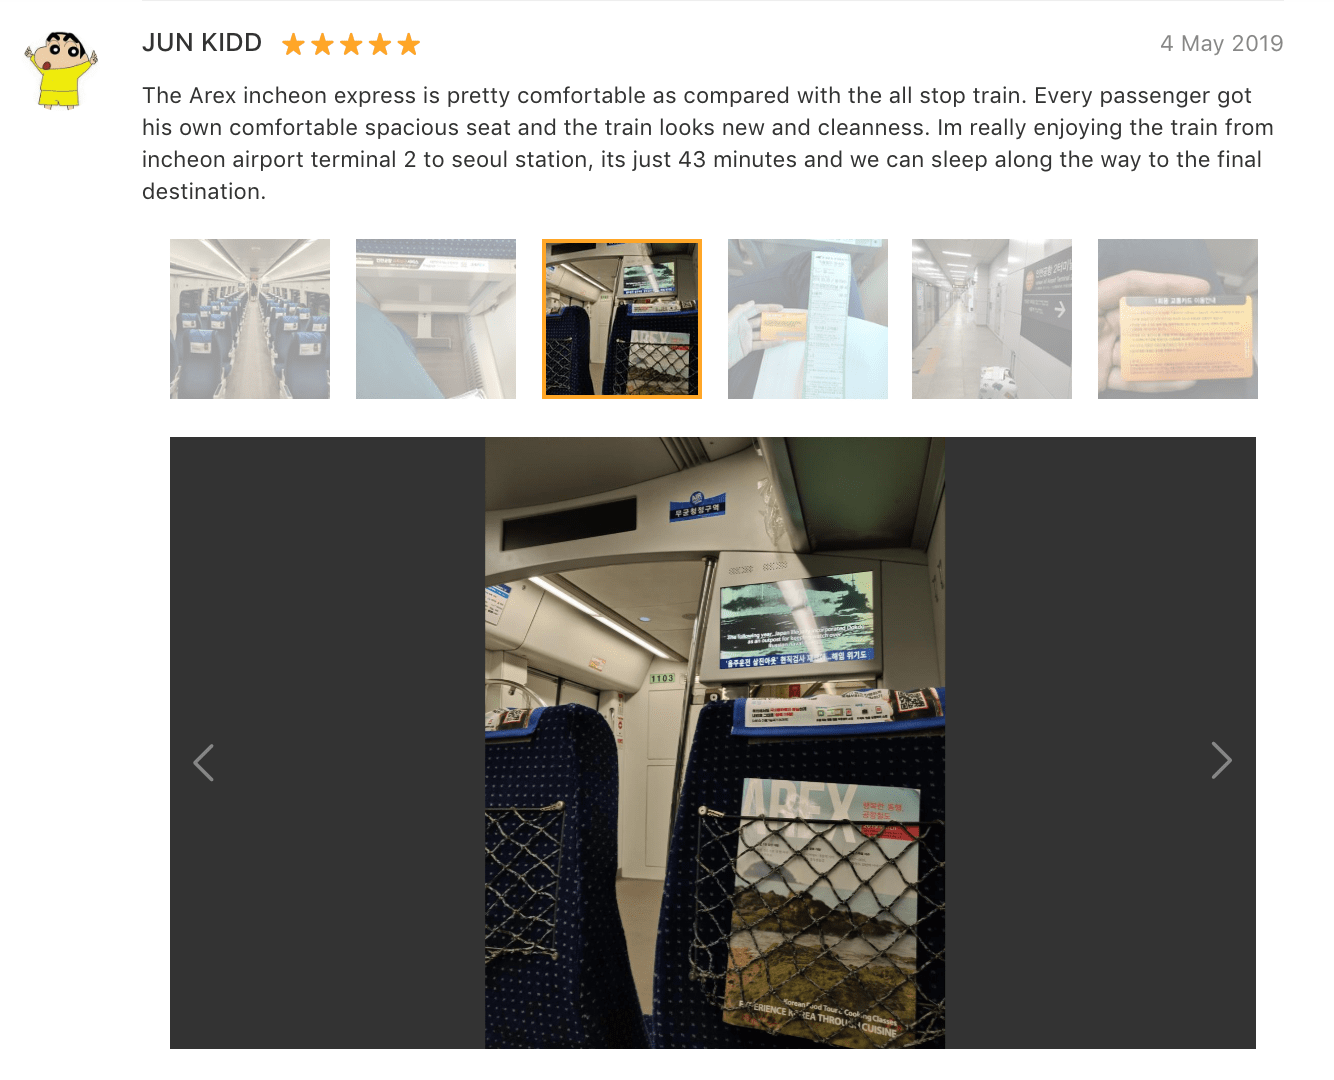 'The Arex incheon express is pretty comfortable as compared with the all stop train. Every passenger got his own comfortable spacious seat and the train looks new…' - AREX Incheon to Seoul Train Ticket (One-way) Review: Klook